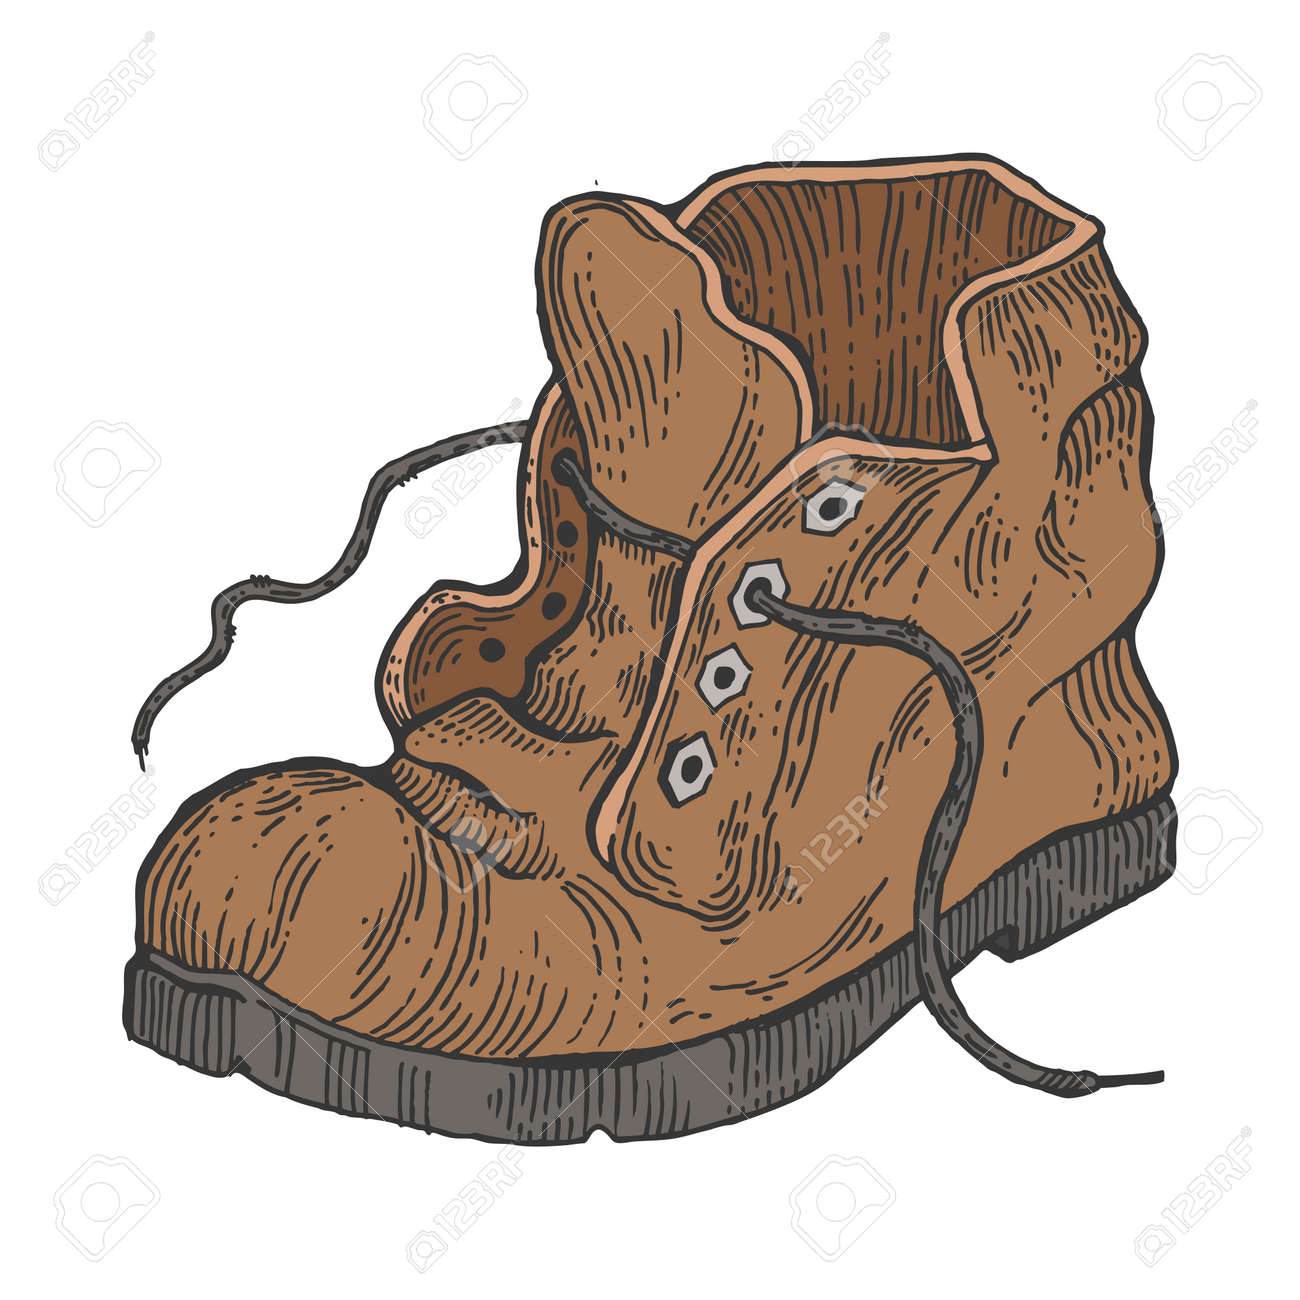 Old shabby boot color sketch engraving vector illustration. Scratch board style imitation. Hand drawn image. - 117552553